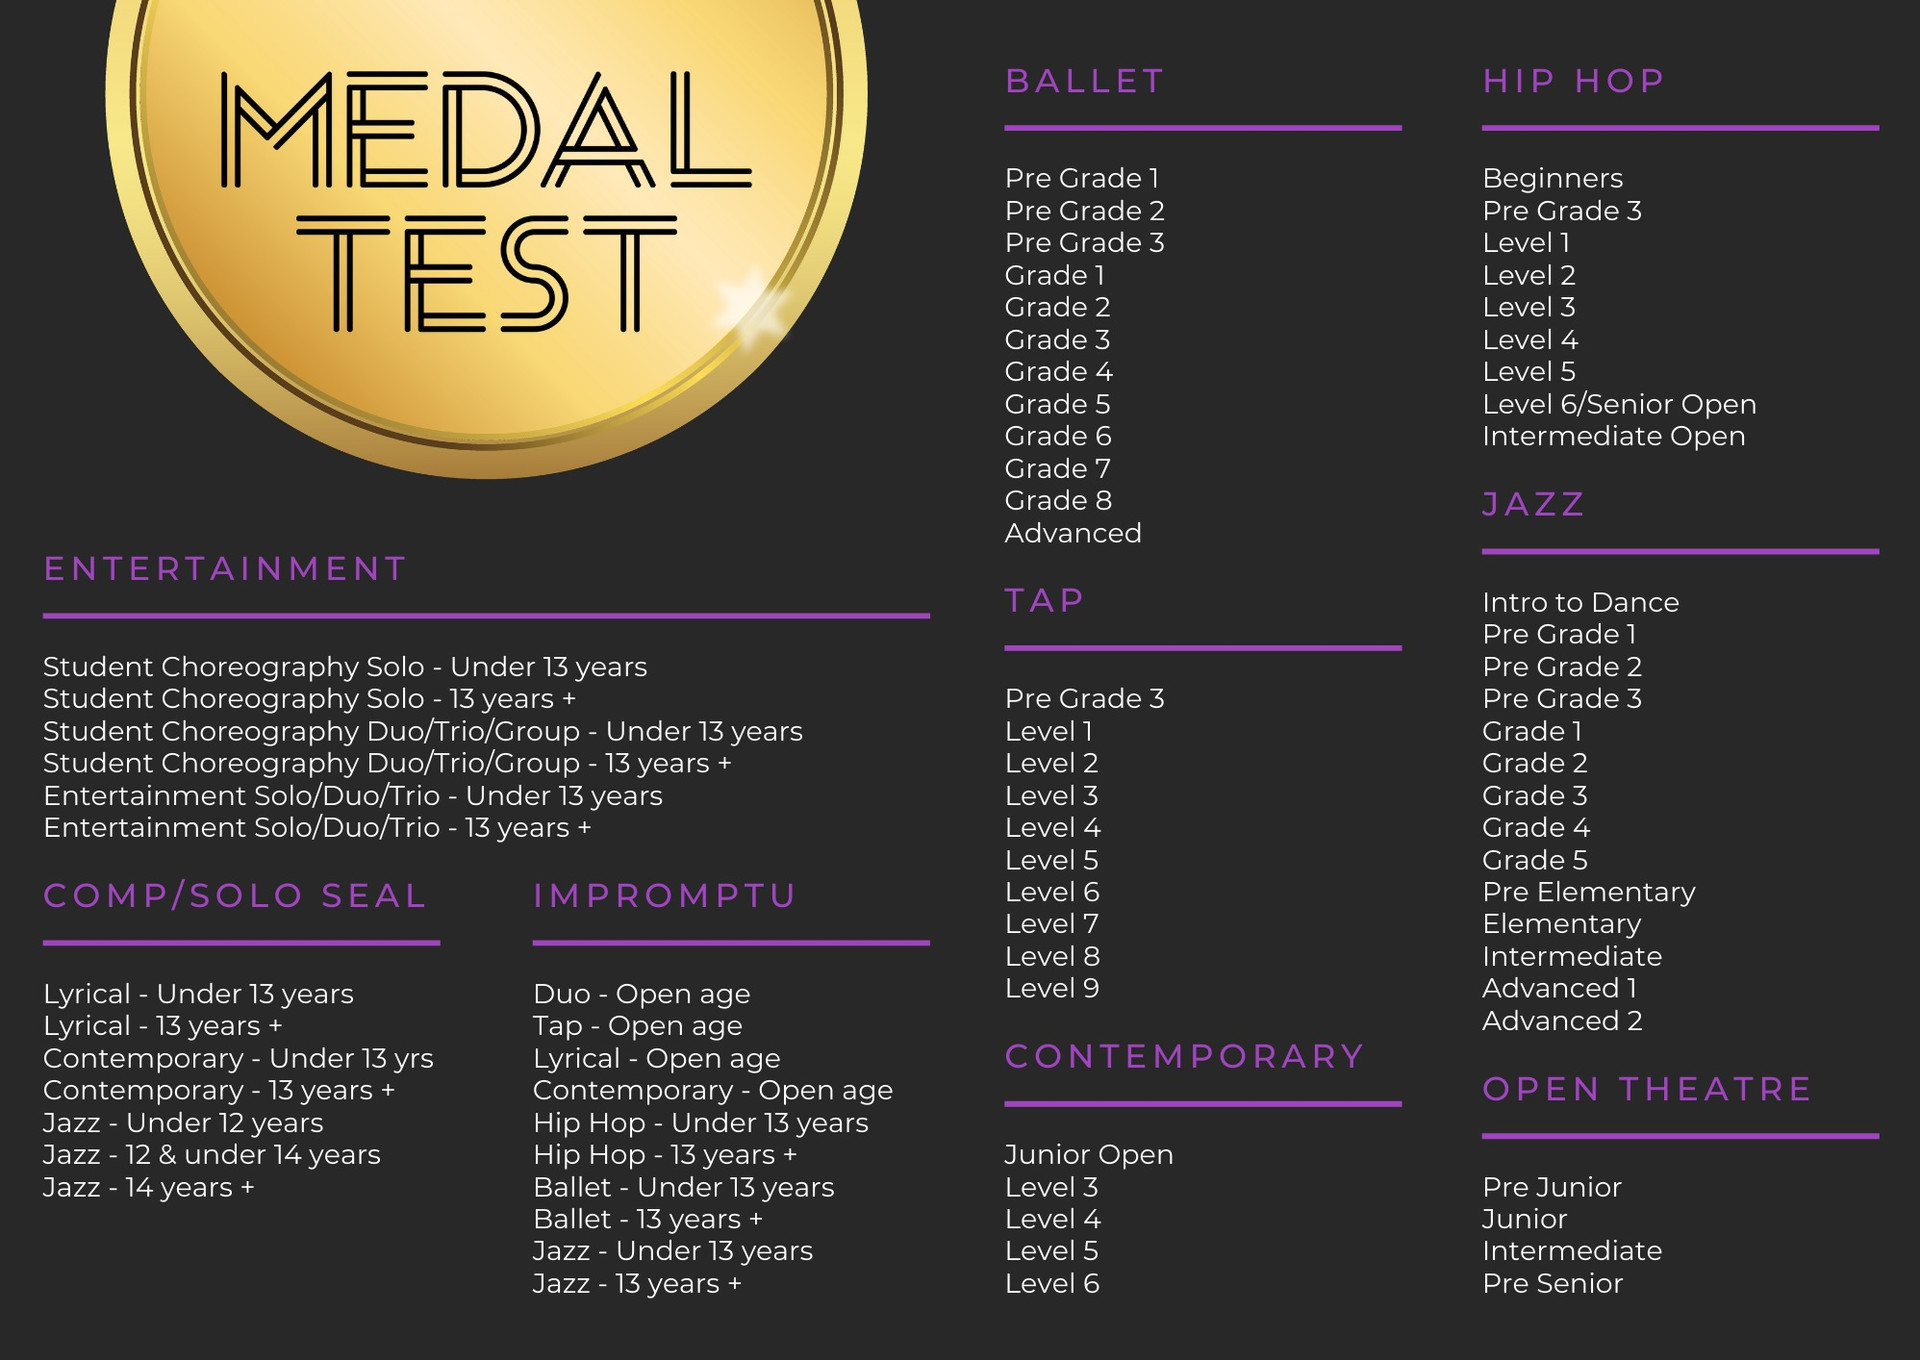 Medal Test Classes